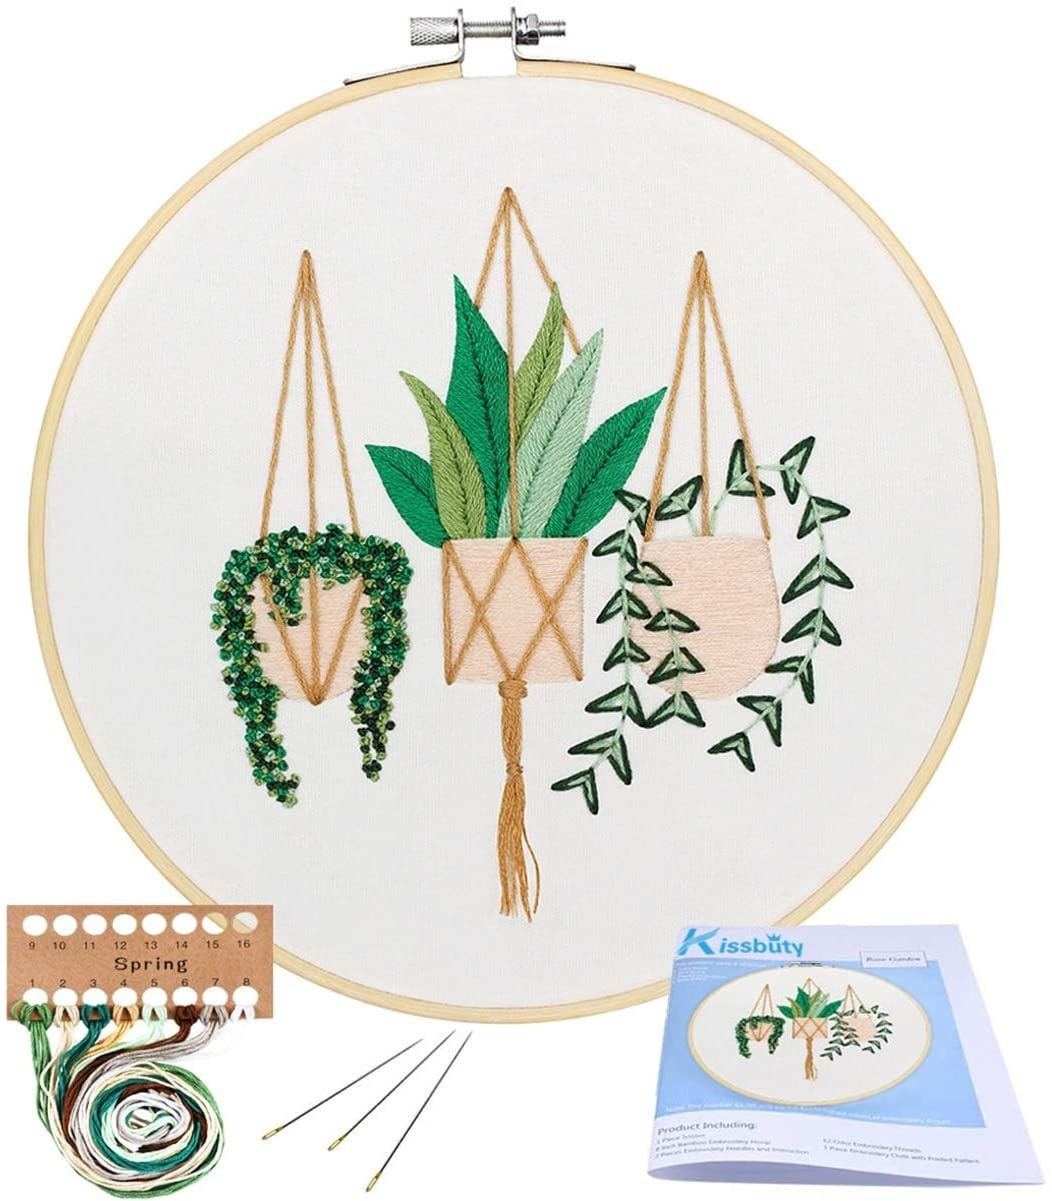 the parts of the kit with the final product that has three hanging plants